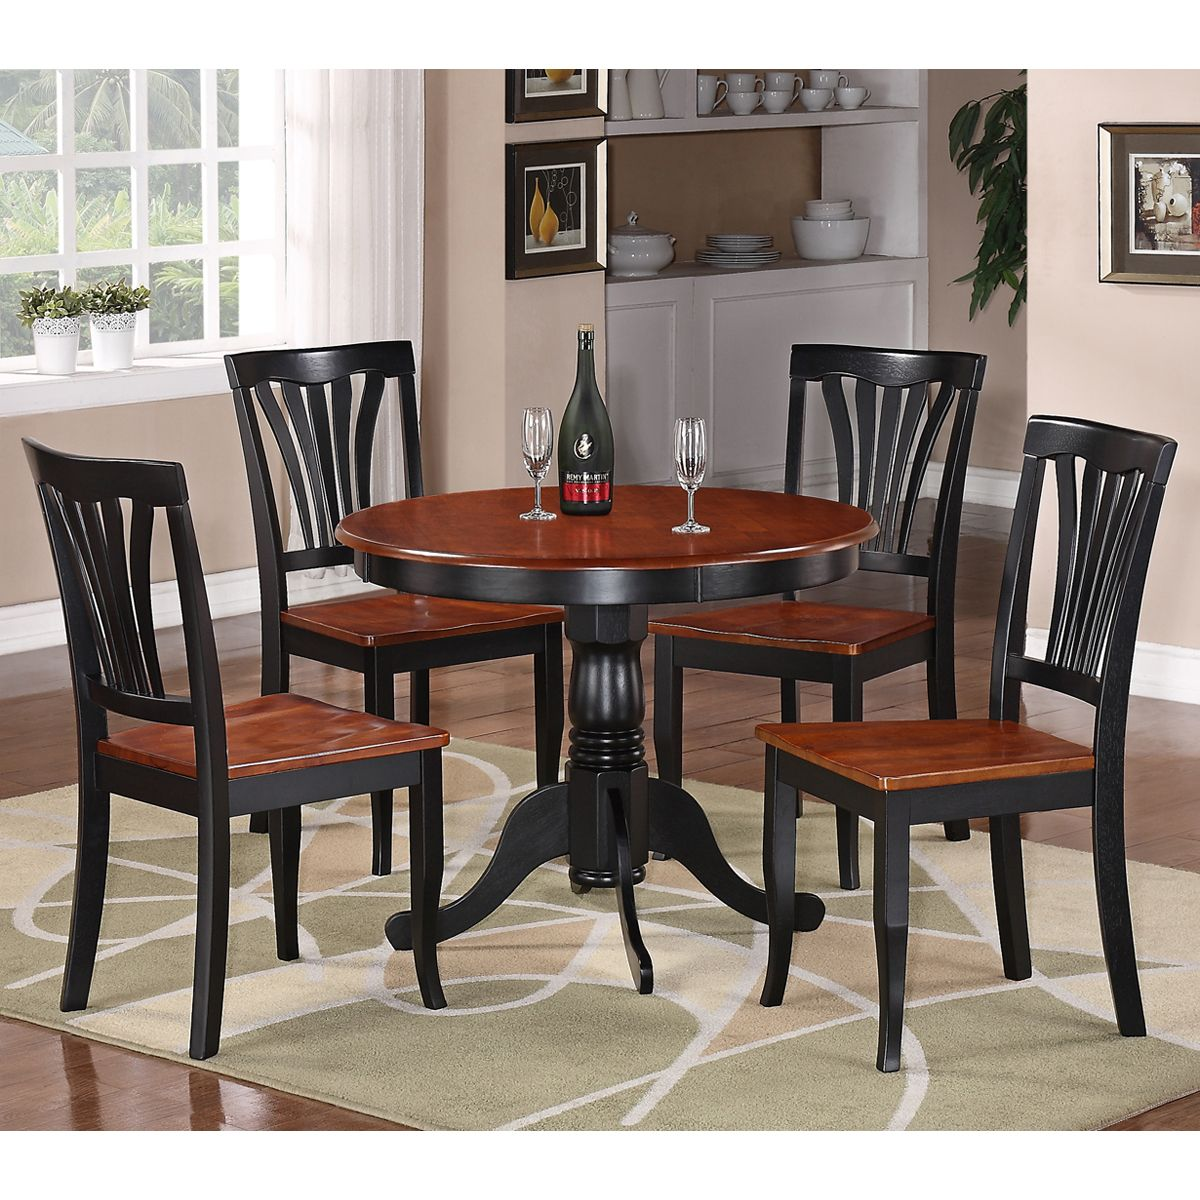 shop east west furniture anav antique round table dining